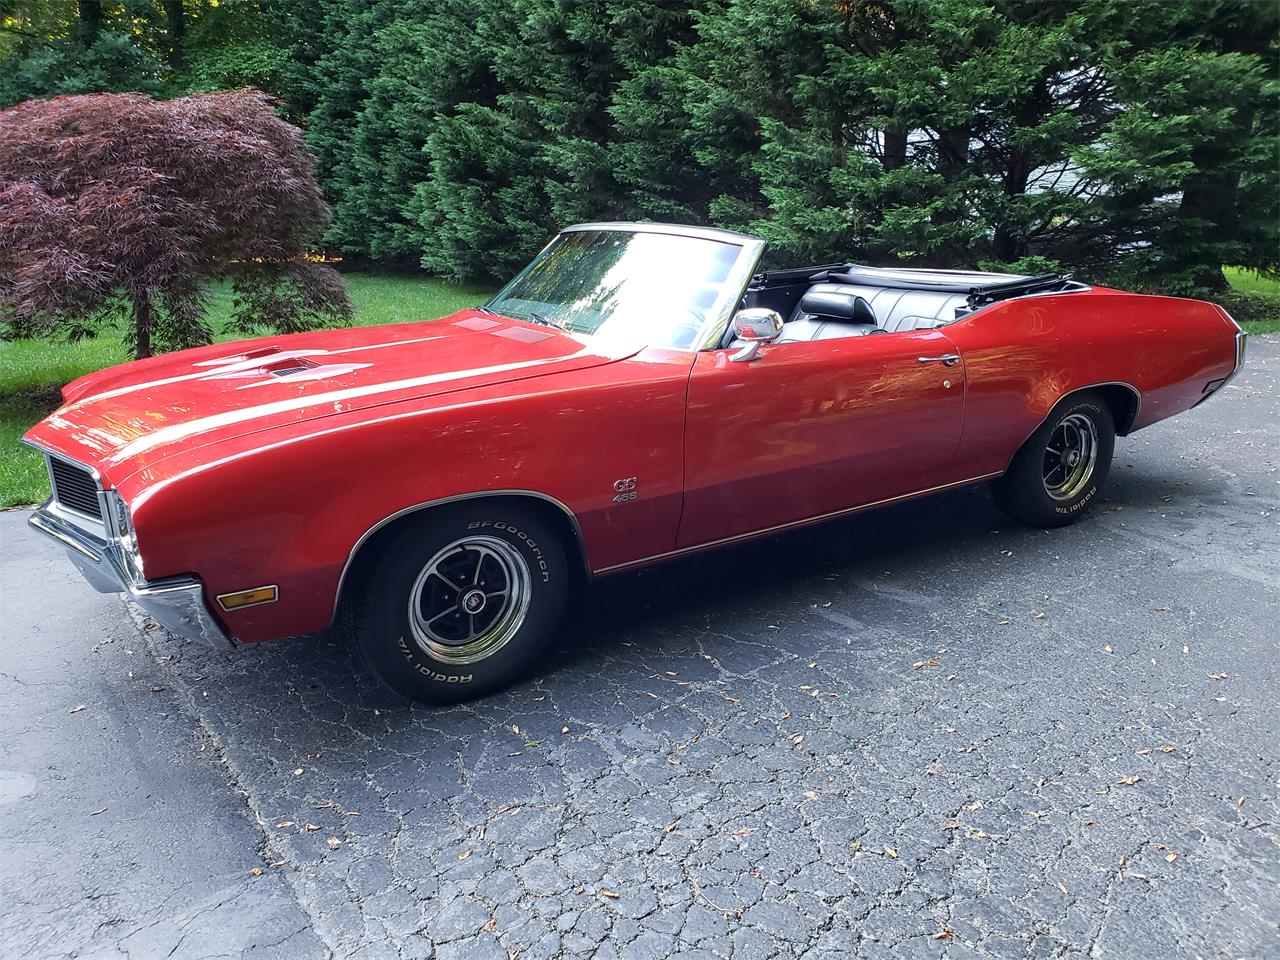 Large Picture of Classic '70 Buick GS 455 located in Huntingtown Maryland - $47,000.00 Offered by a Private Seller - Q6WV